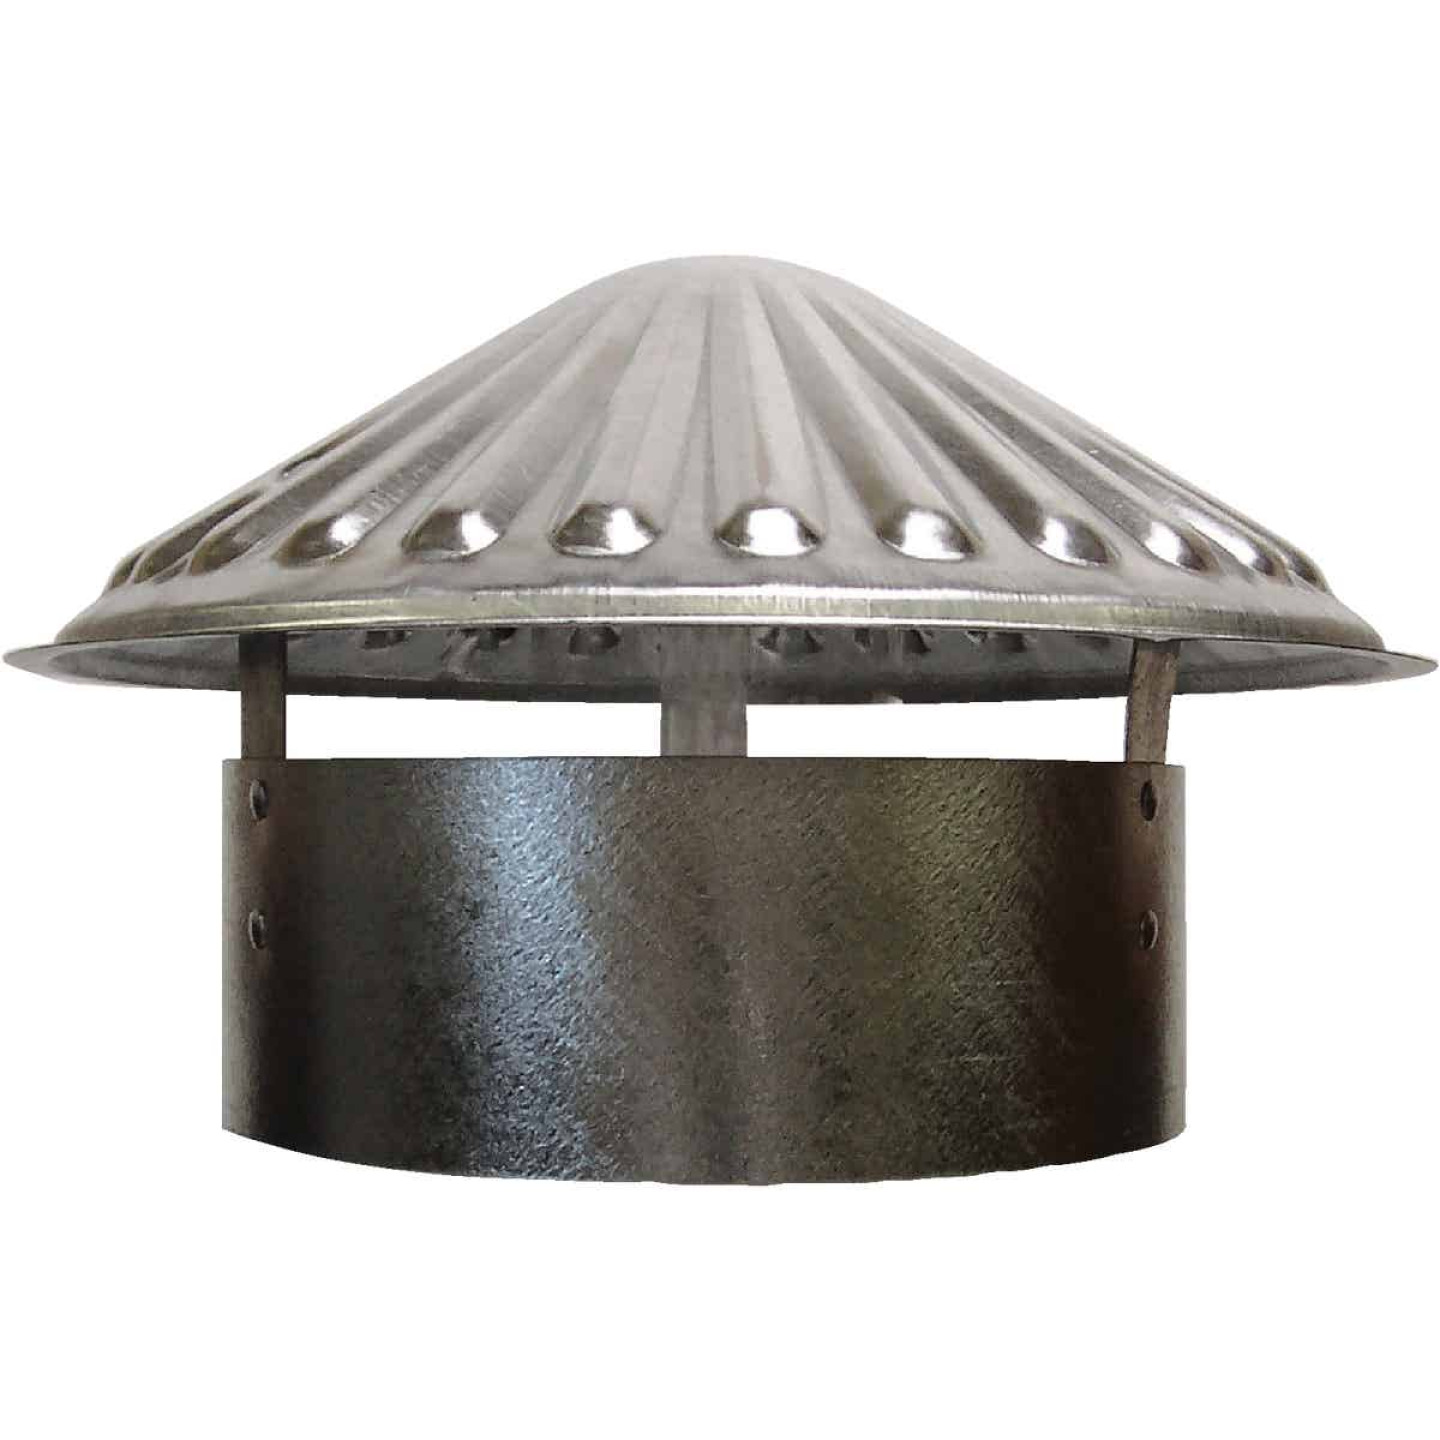 S & K Galvanized Steel 8 In. x 11 In. Vent Pipe Cap Image 1